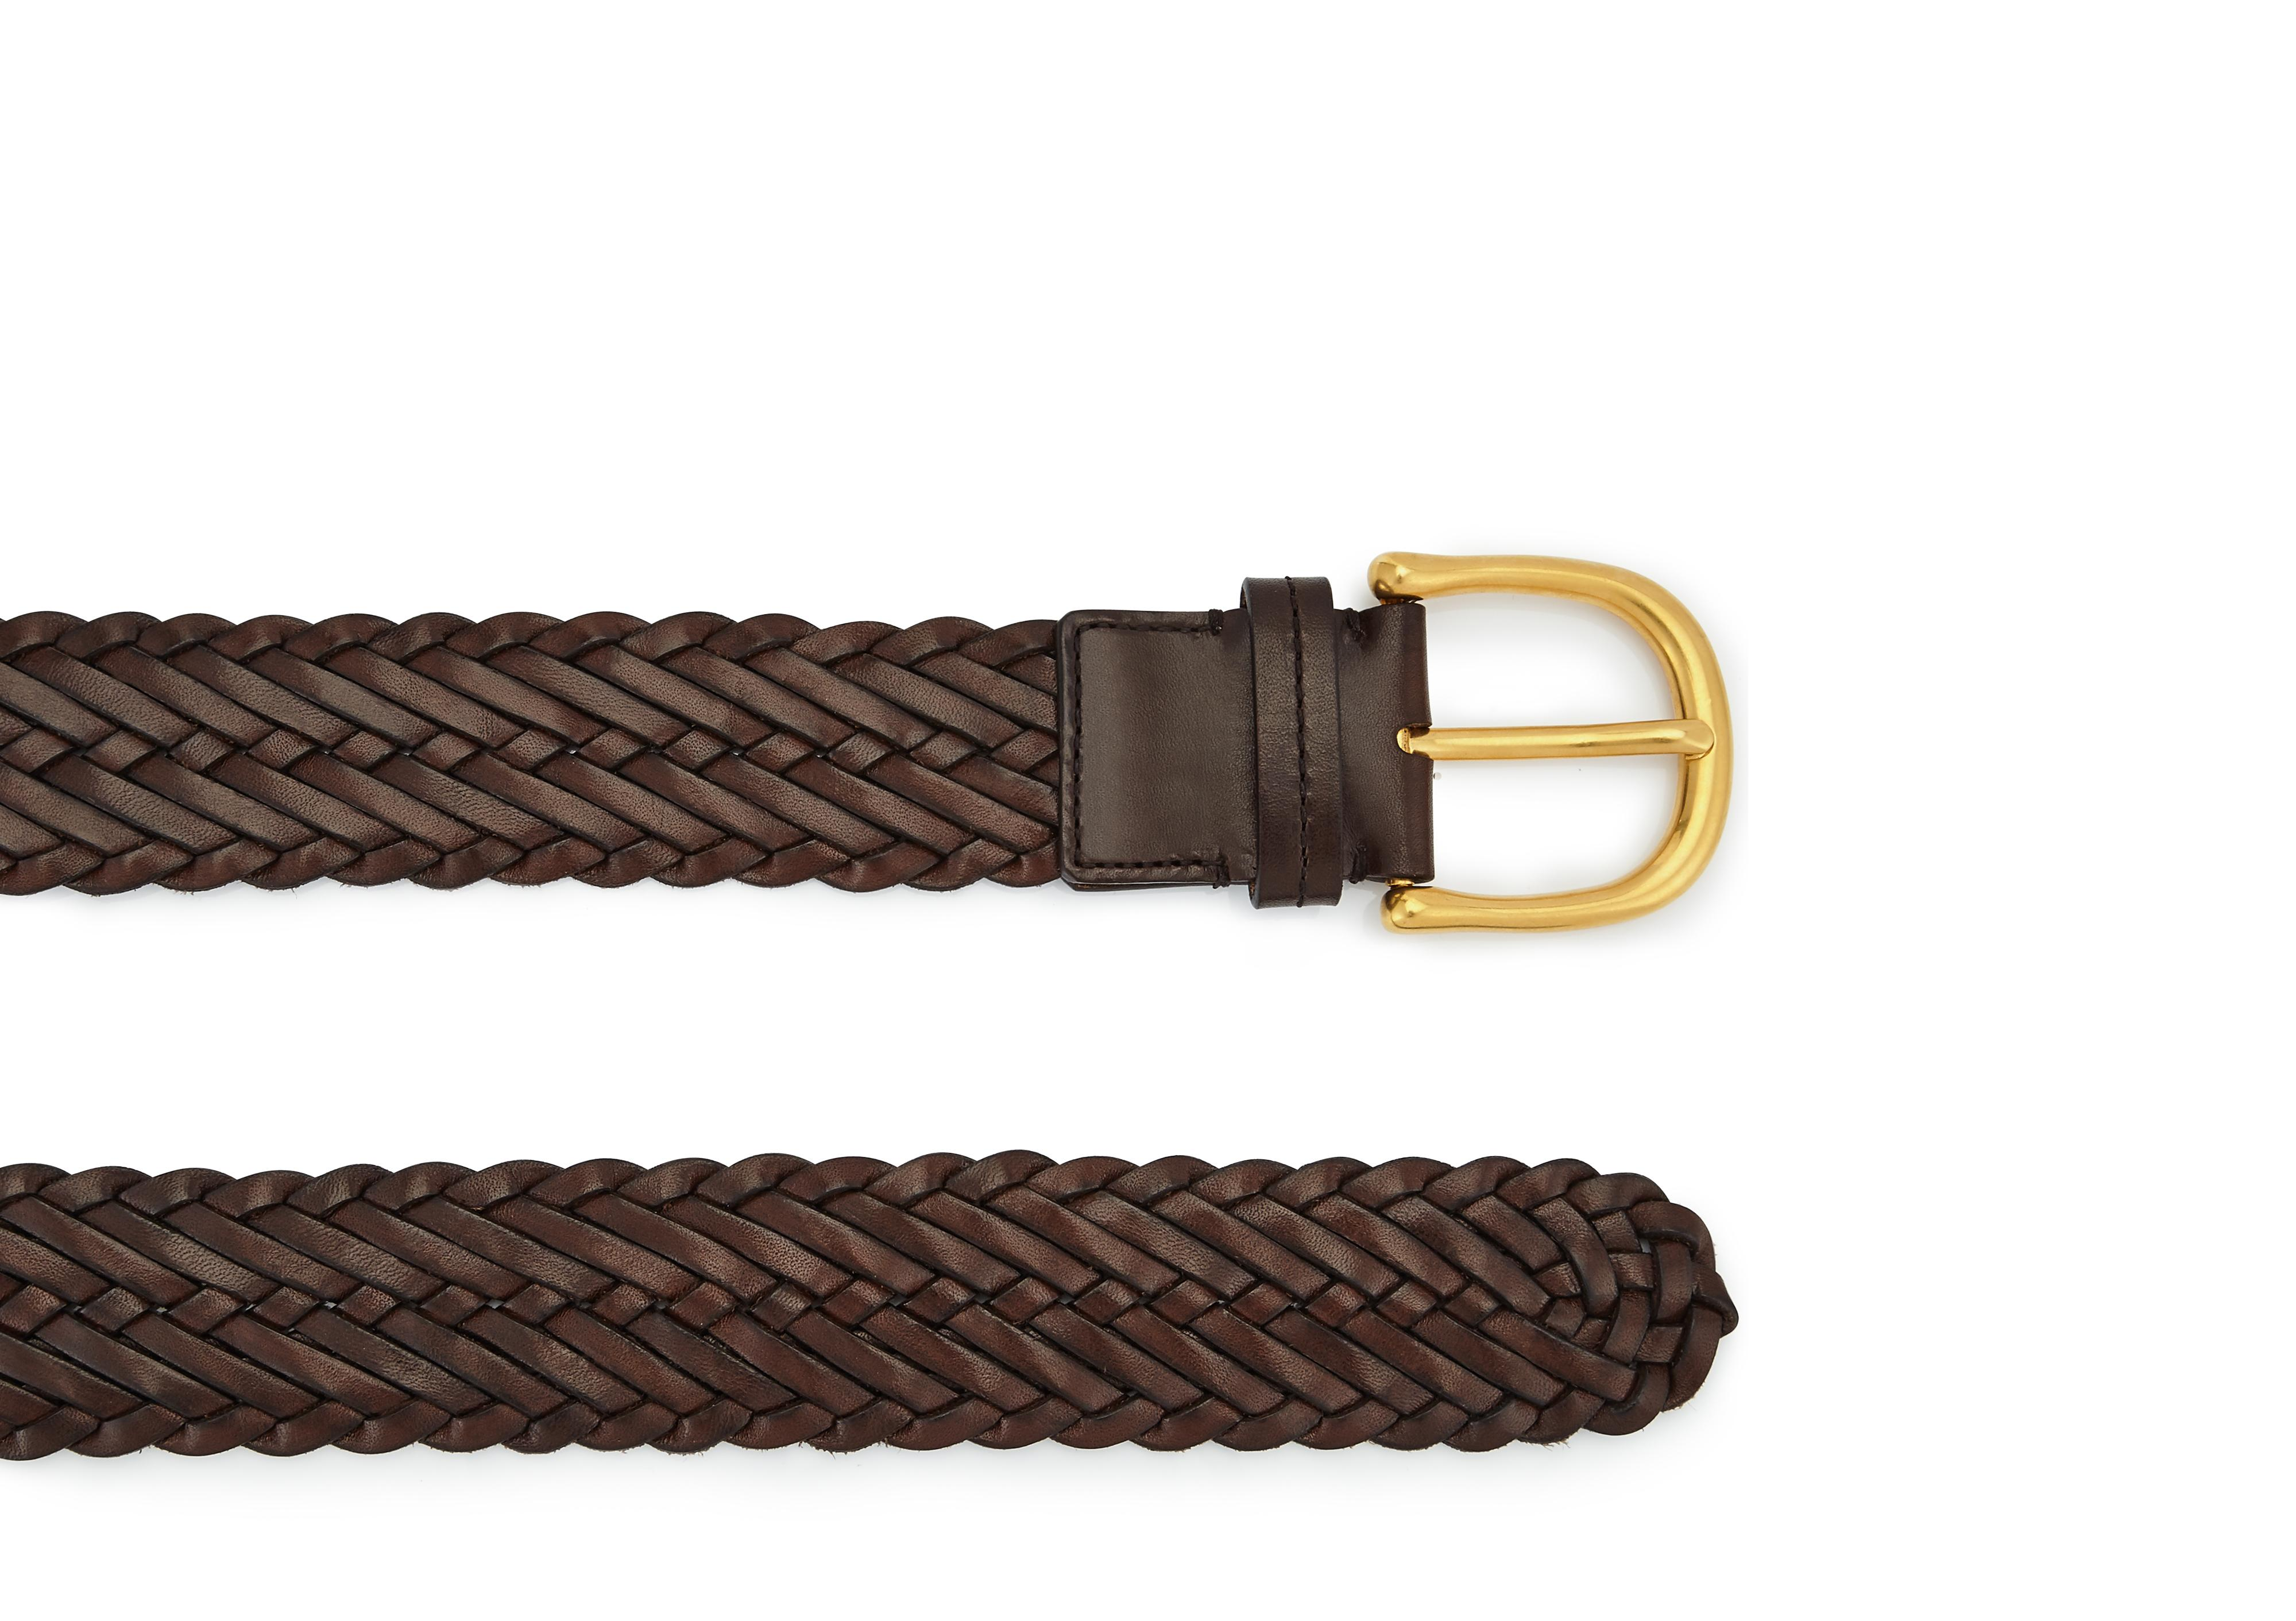 WOVEN LEATHER BELT WITH GOLD BUCKLE B thumbnail